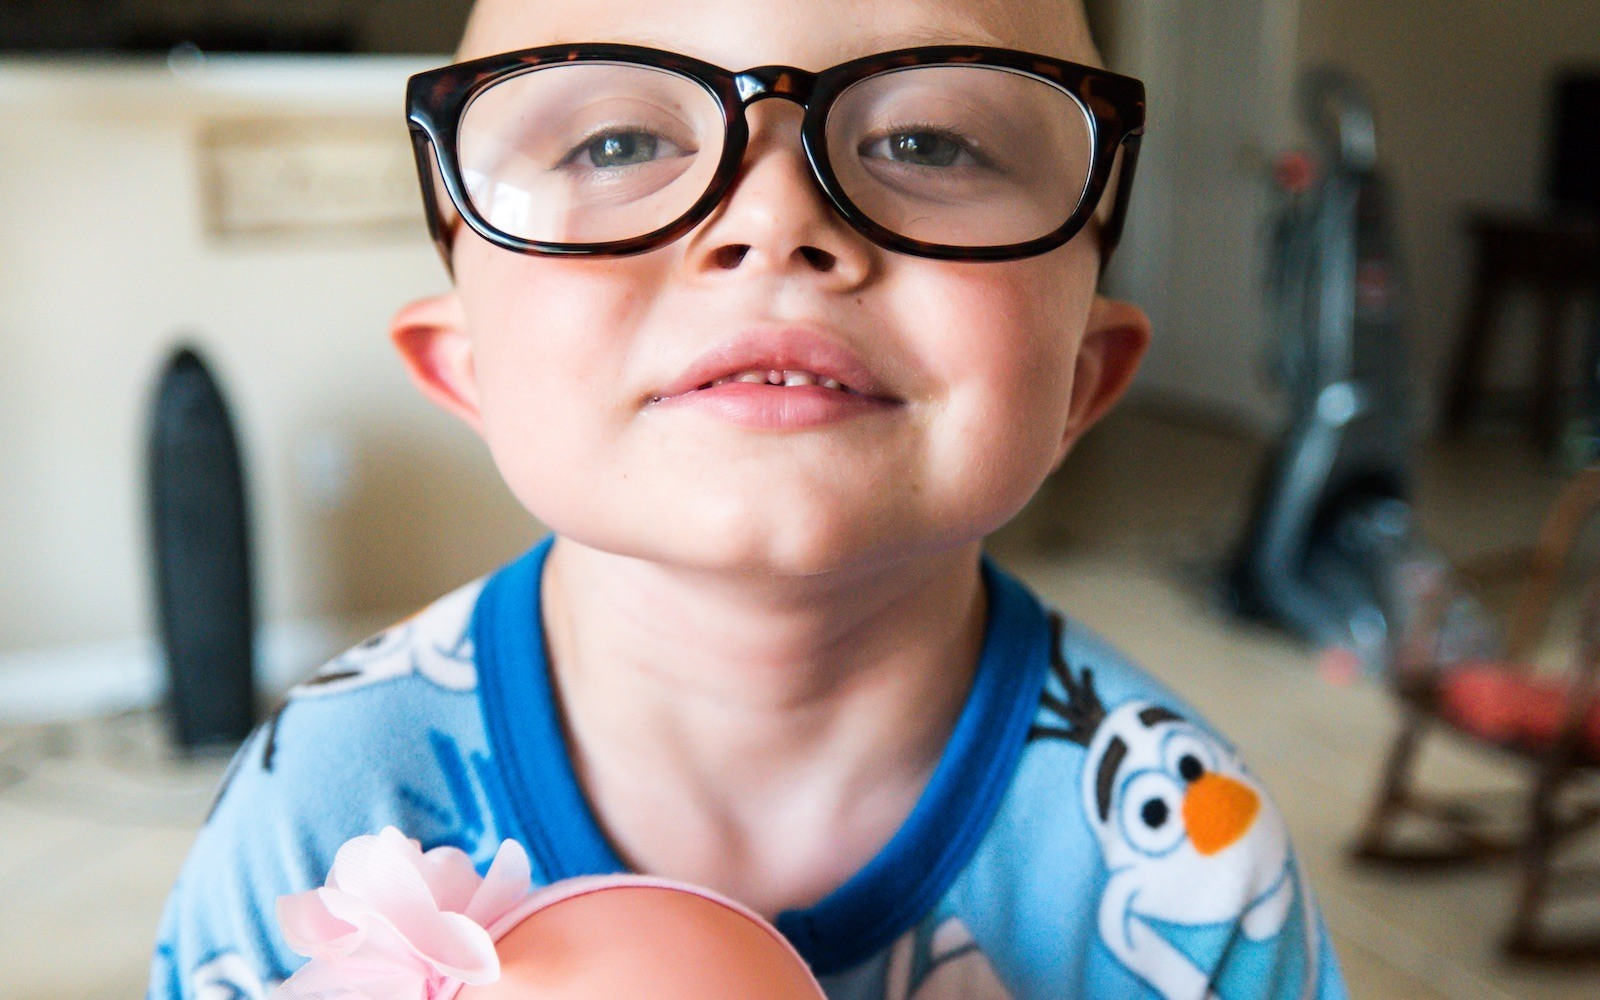 Dear Son: It's Okay For Boys to Play With Dolls (You'll Make a Great Daddy Someday)